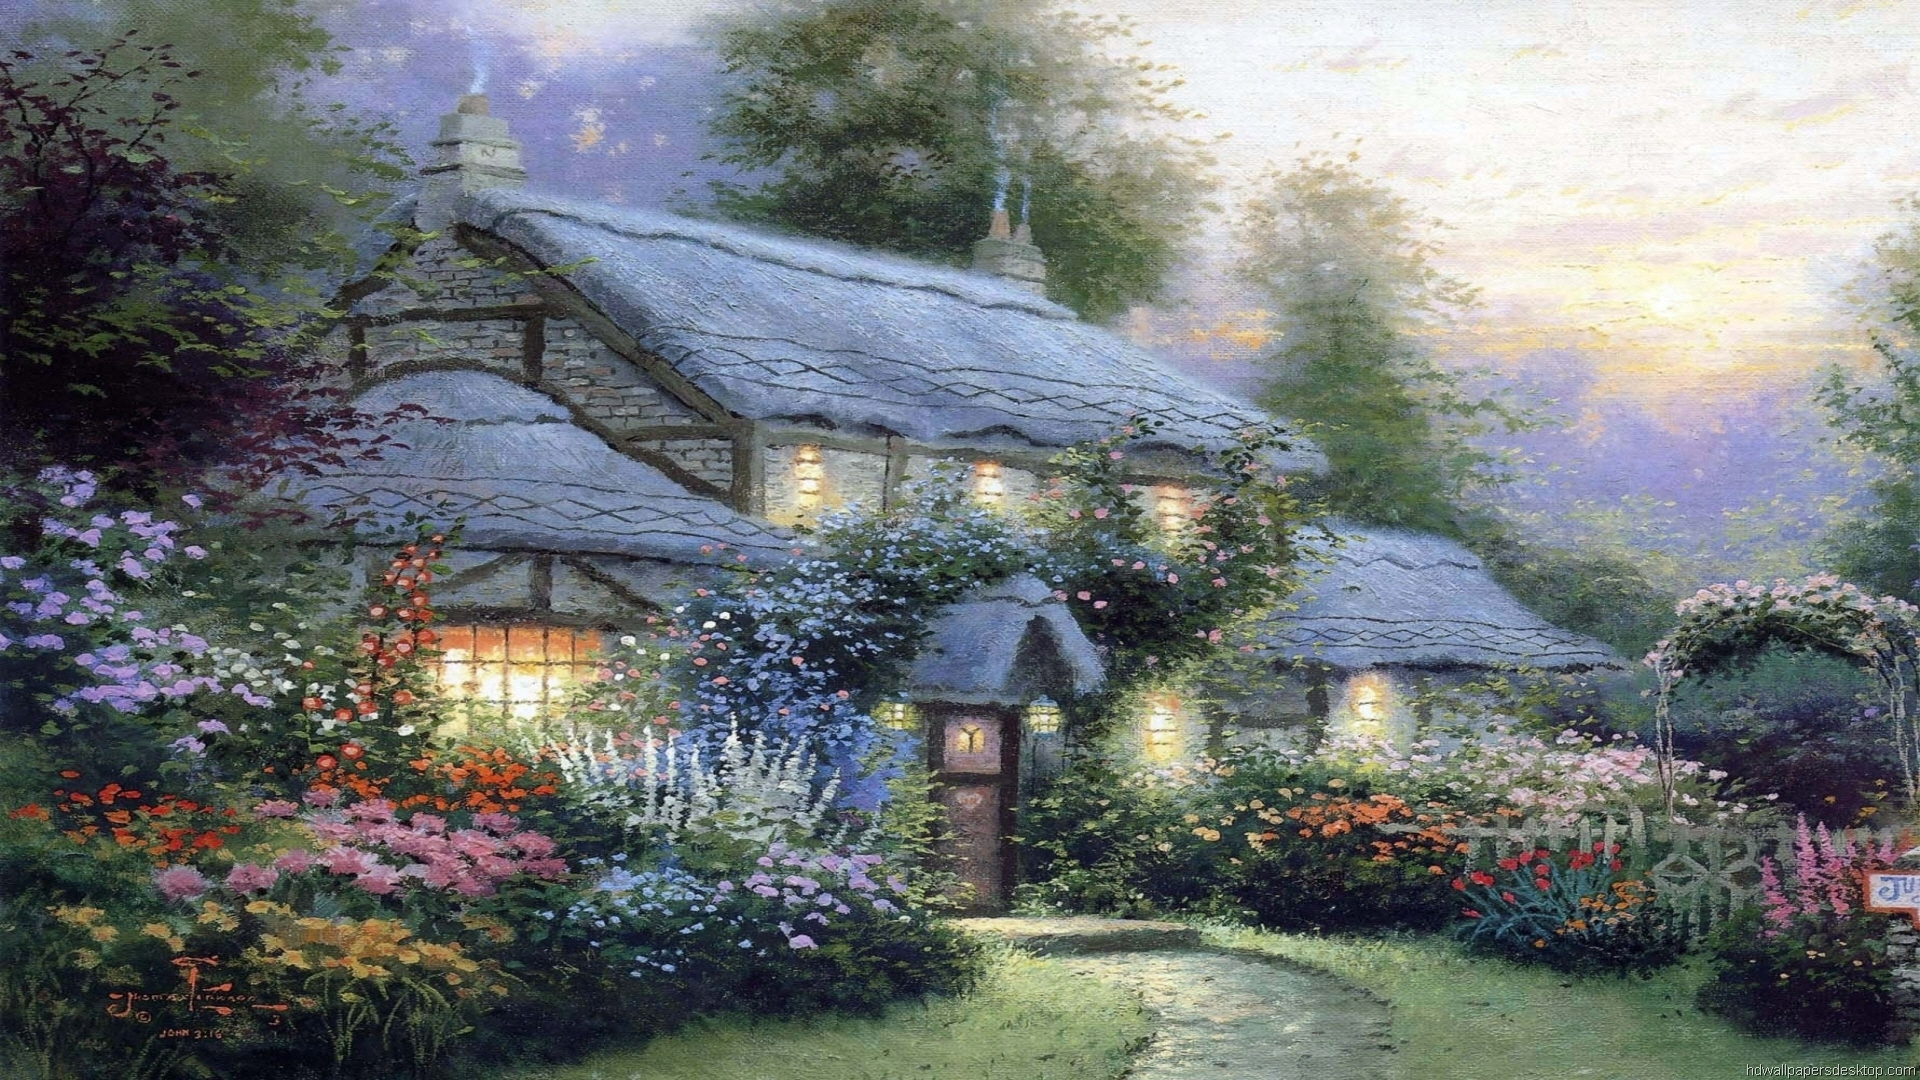 thomas kinkade wallpaper 1920x1080 - photo #17